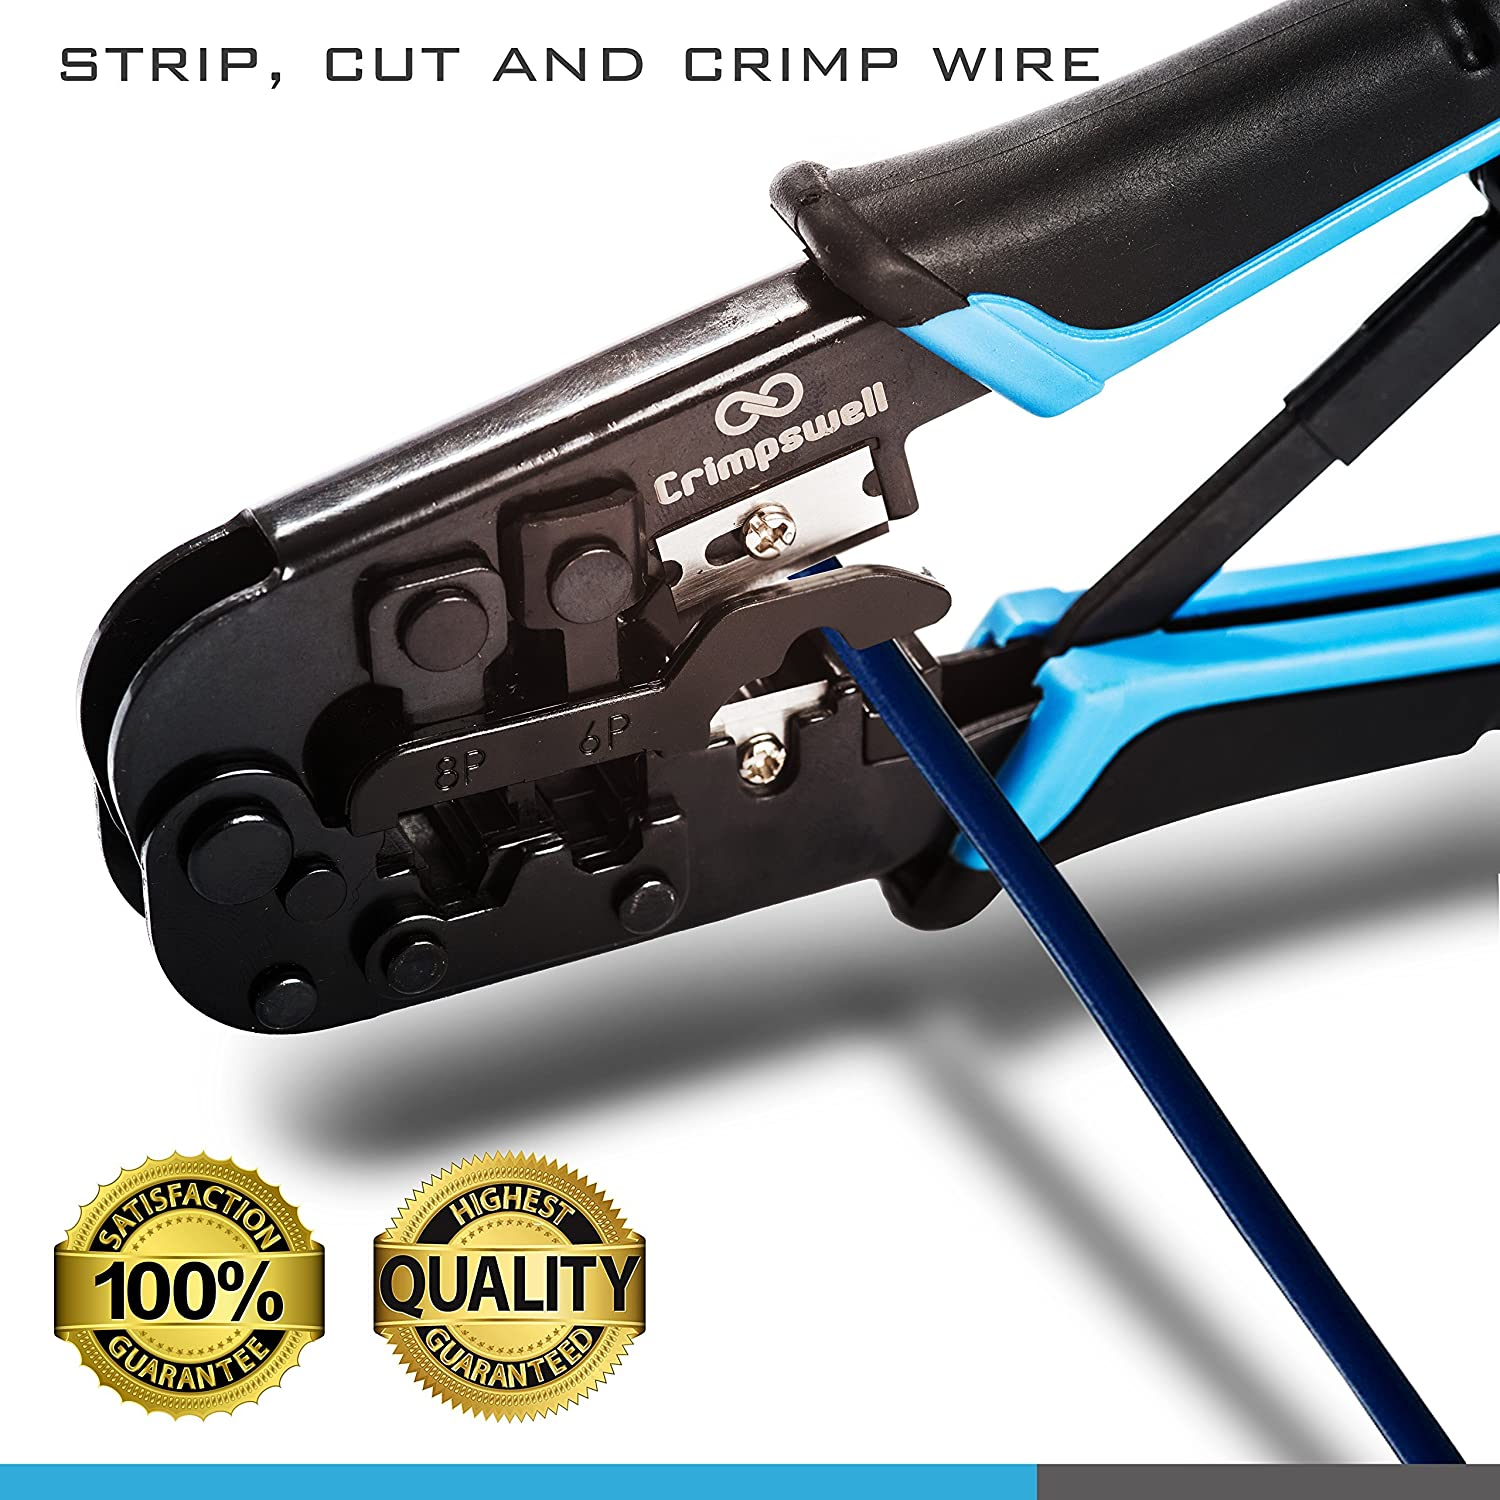 Rj45 Ethernet Cable Wiring Tools Simple Electrical Diagram Plug Crimping Tool And Rj12 Rj11 Crimper Cutter Stripper Wire Crimpers